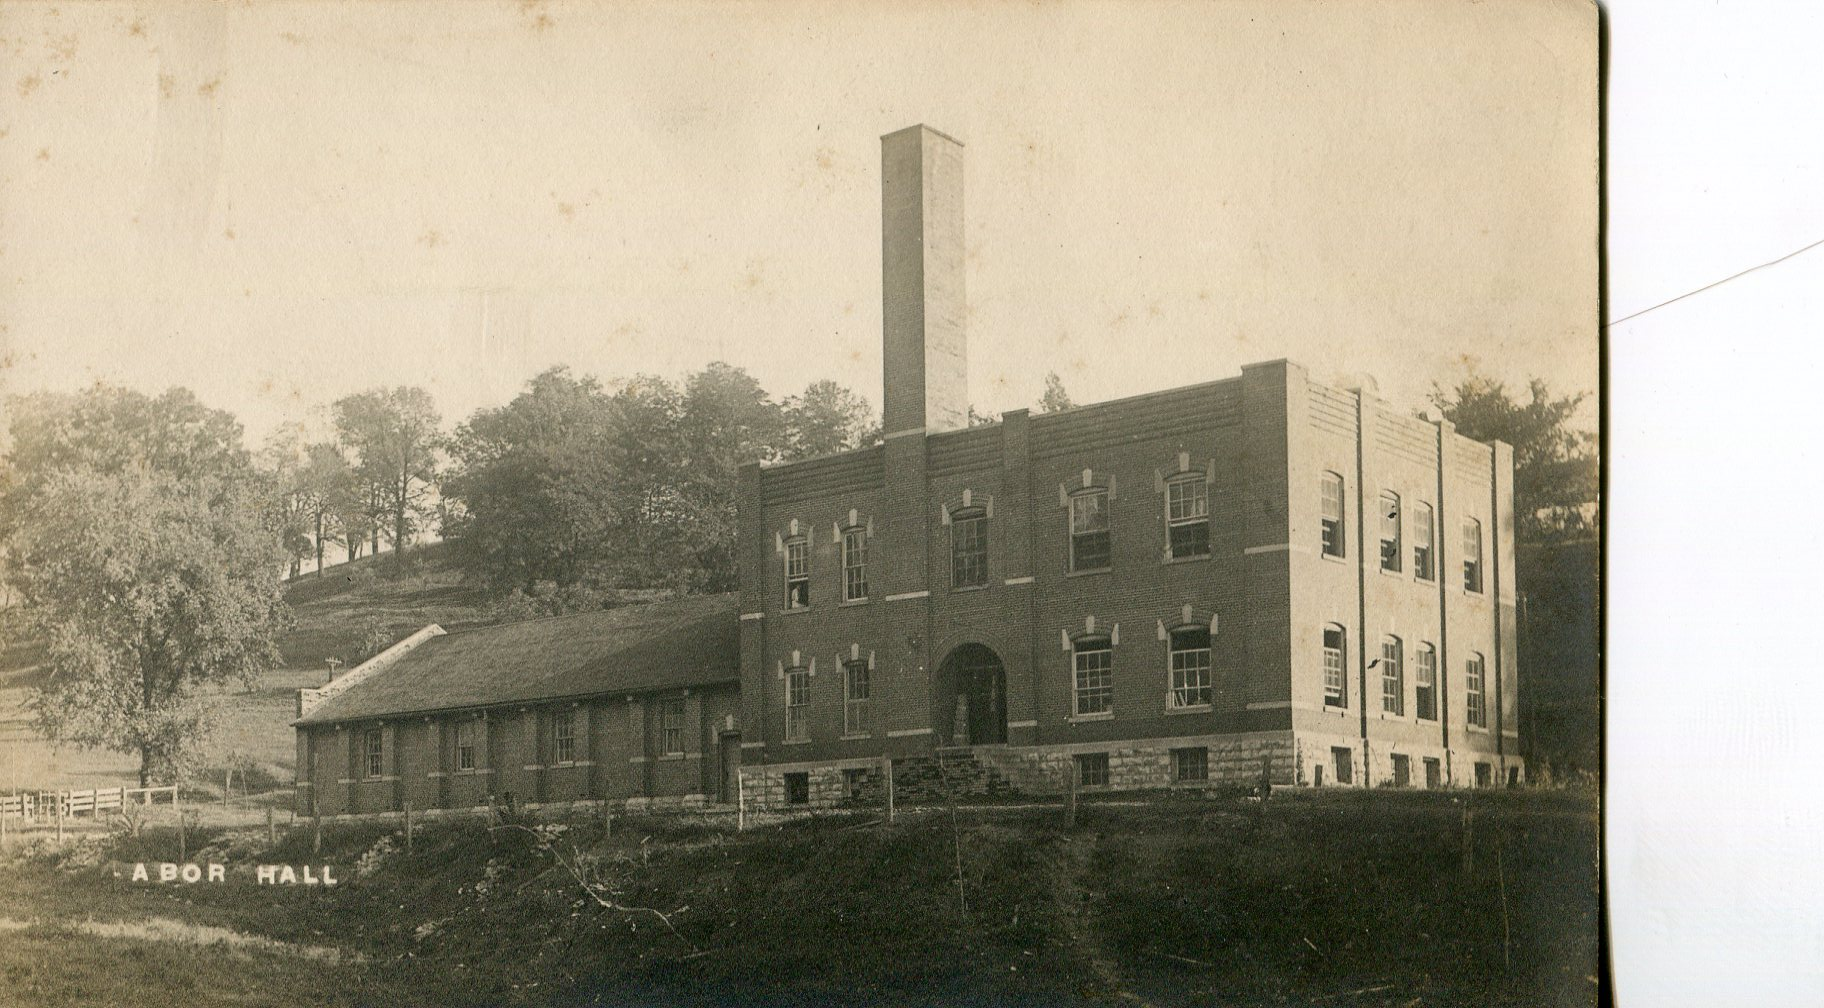 Labor Hall from the front. Note the smaller building to the left of Labor is called Field House and is not separate but attached.